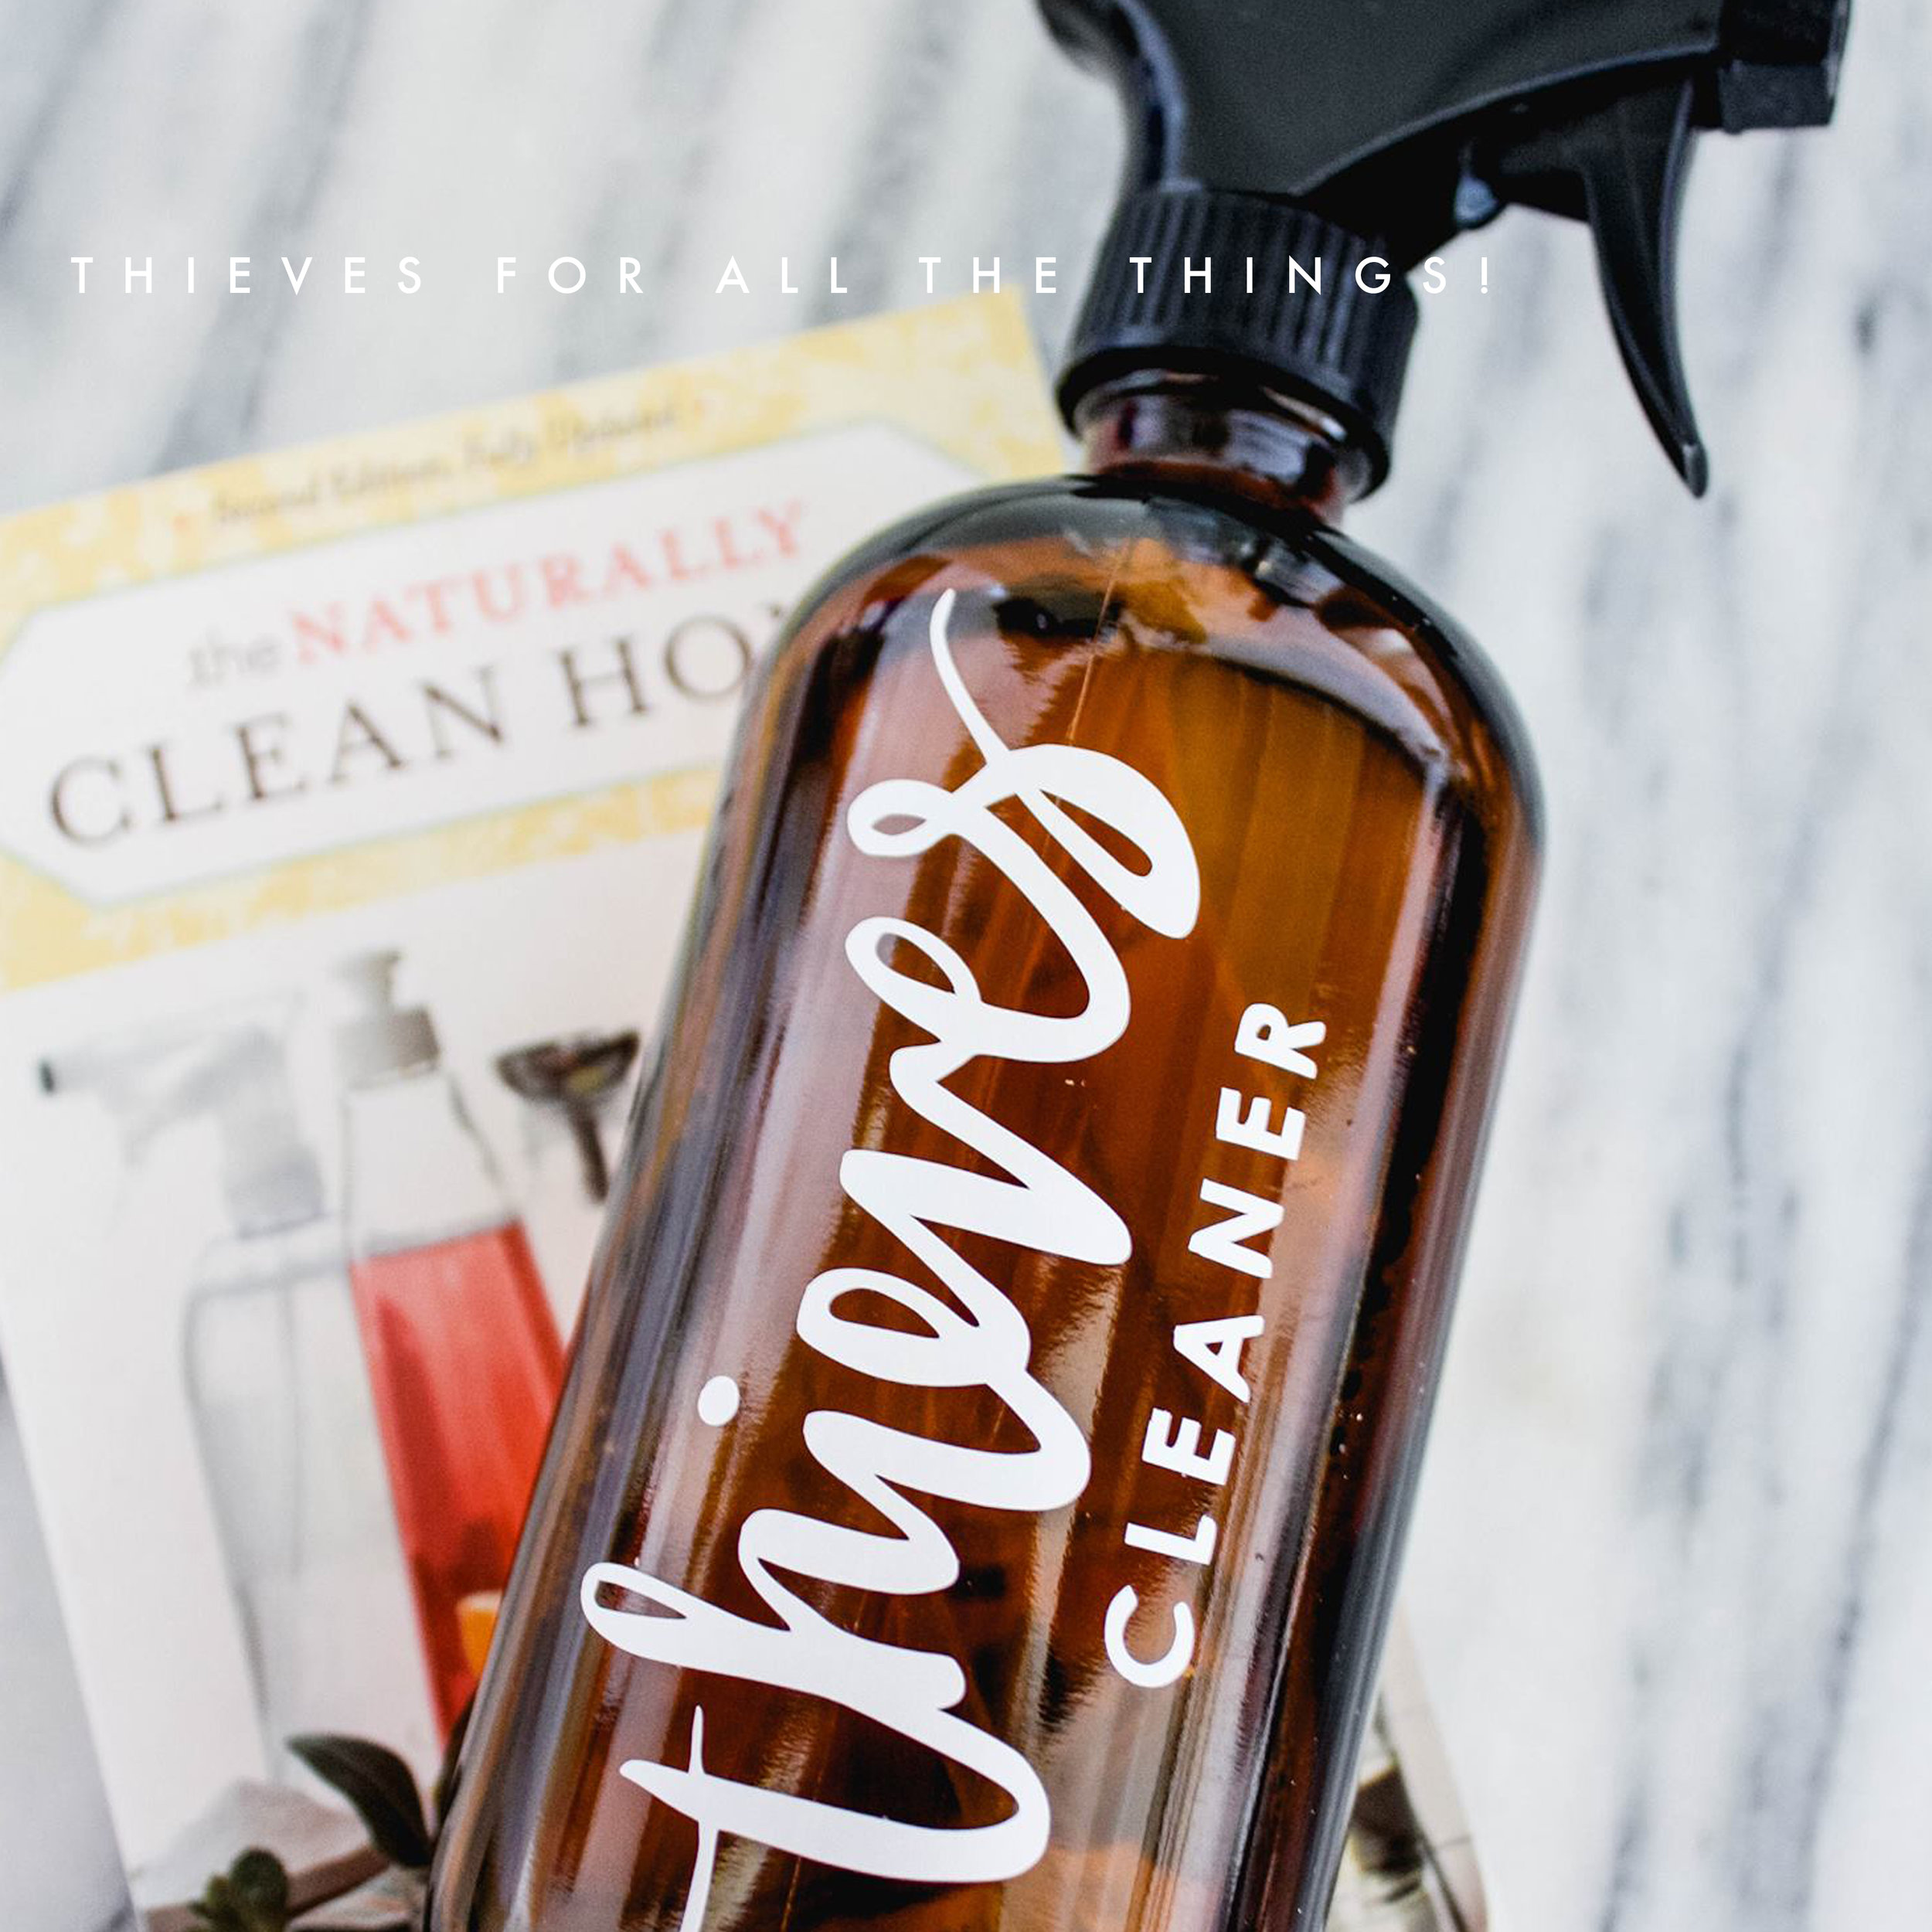 Cleaning - Thieves. This stuff is gold. You can literally use it to clean any thing. Young Living sells a bottle of the cleaner and all you do is dilute it to fit the area you are cleaning and viola! It is a natural way to clean and I don't have to be paranoid about my babies getting into something they shouldn't.